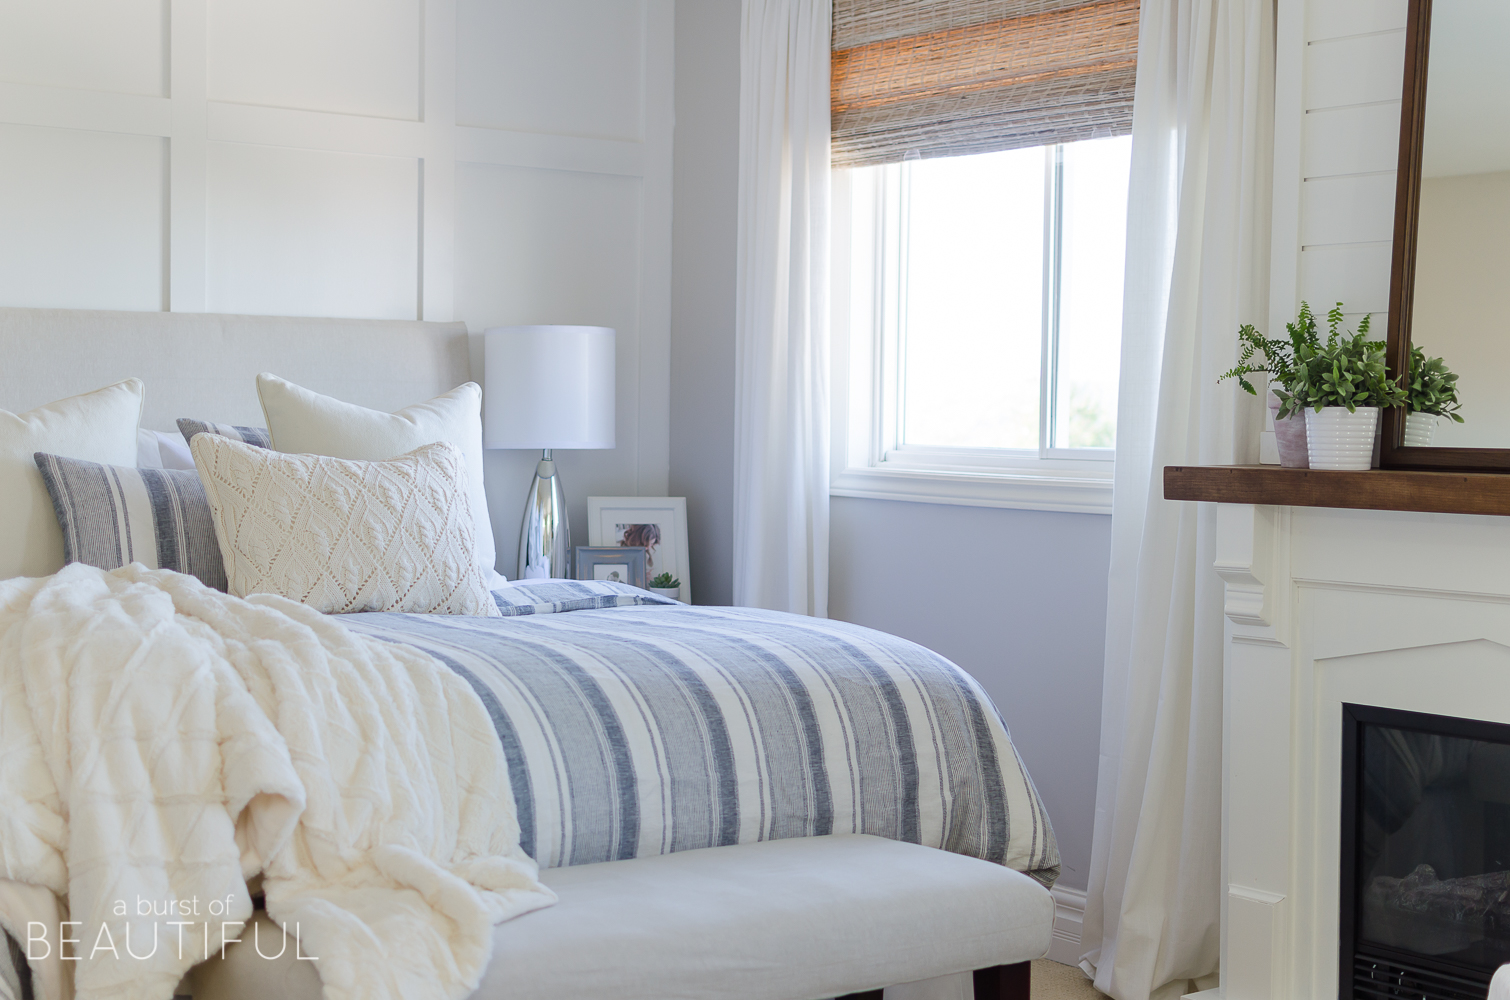 These bedding tips for a beautiful and cozy bed are simple and easy to follow